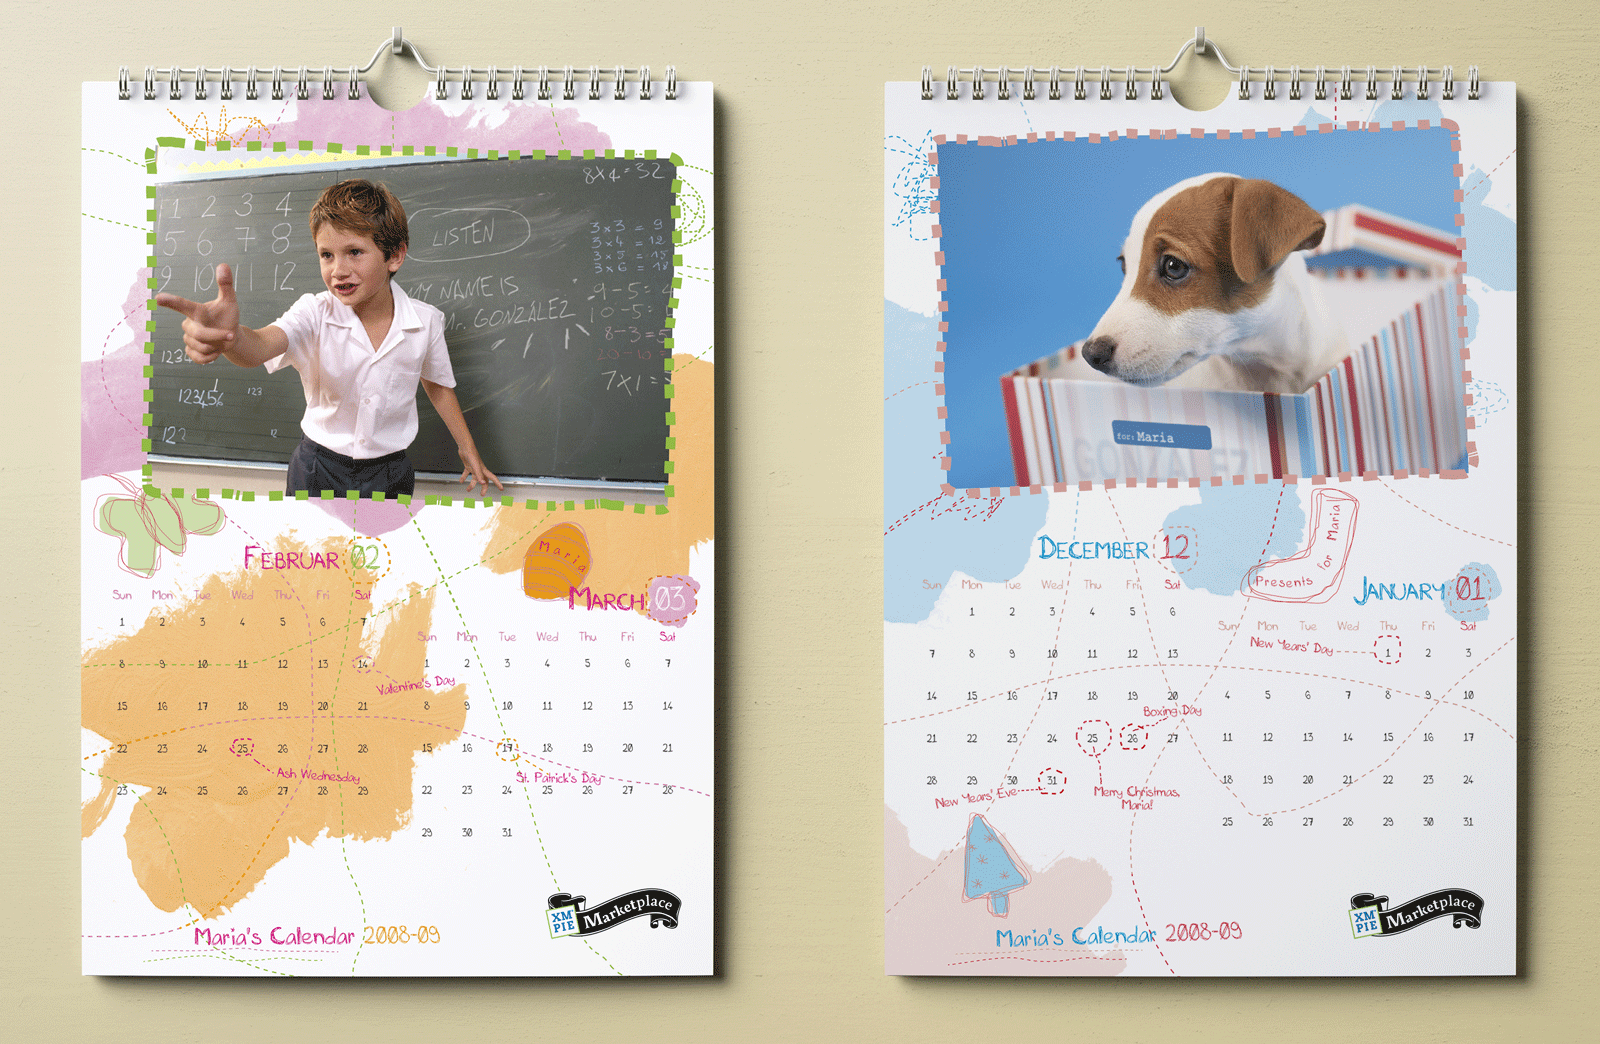 https://bigeyes.co.il/wp-content/uploads/2019/07/kids-calendar-3.png